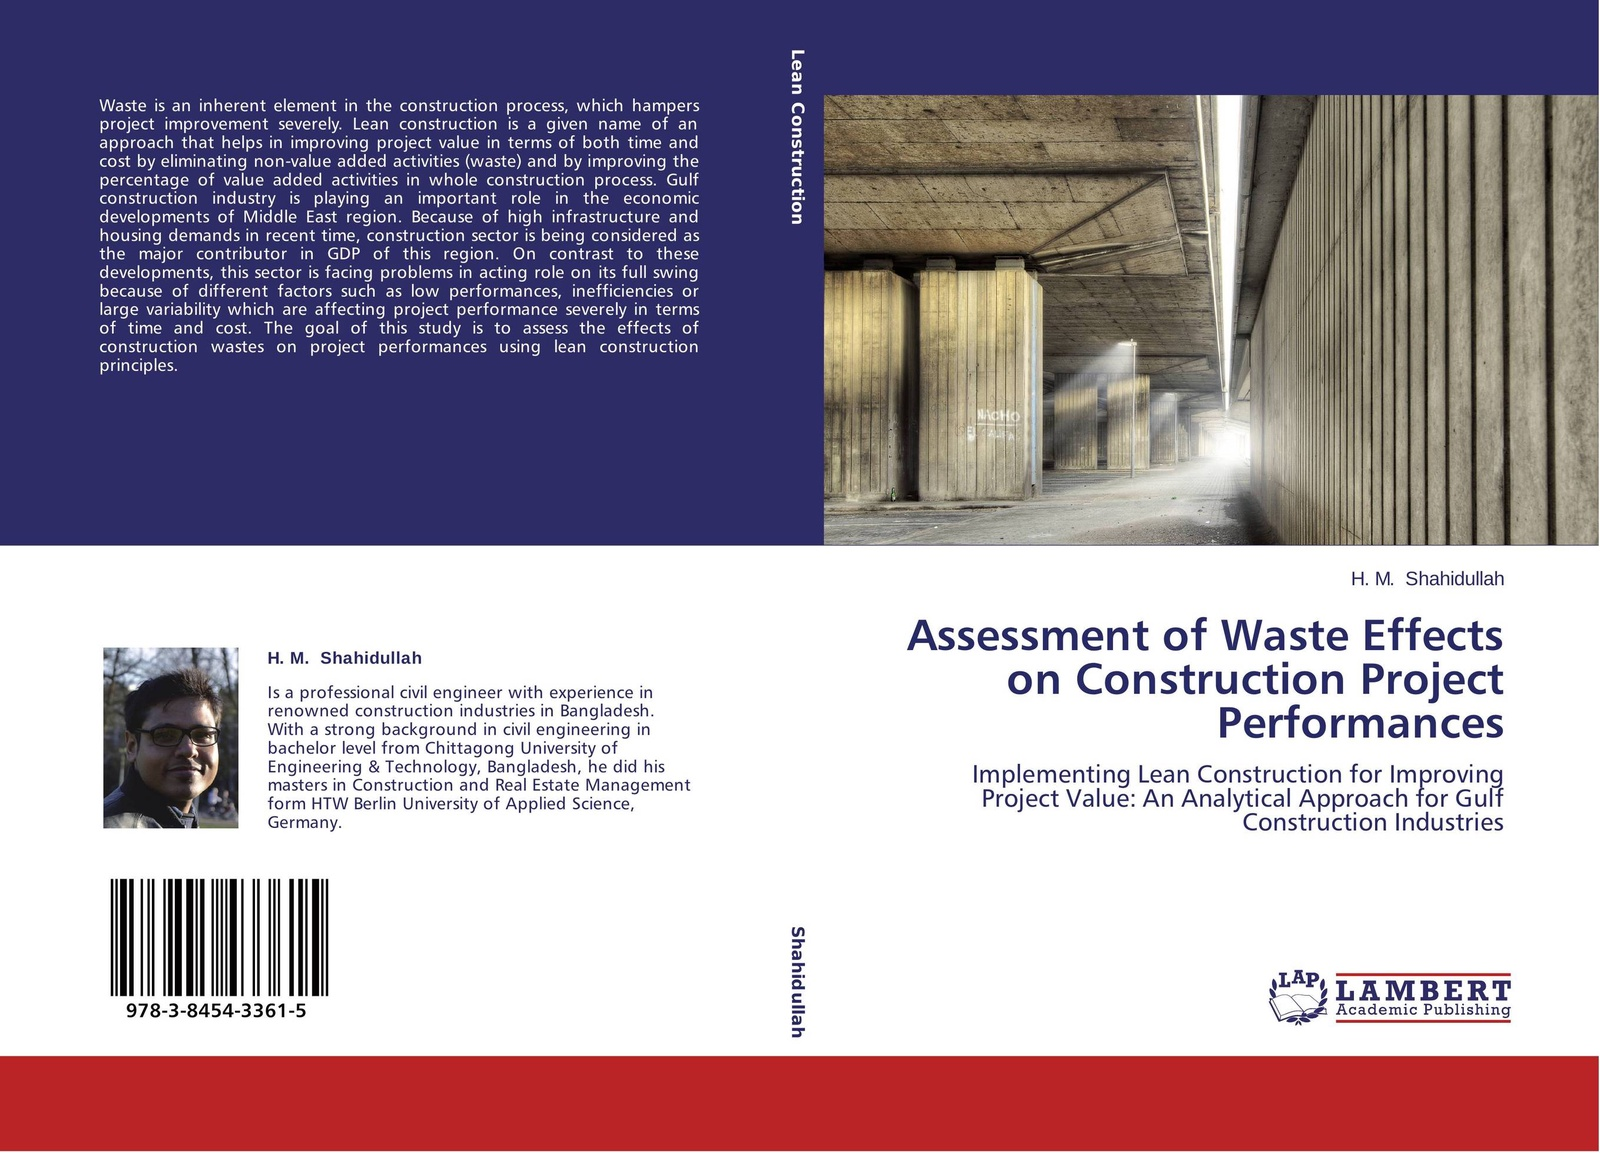 H. M. Shahidullah Assessment of Waste Effects on Construction Project Performances girma zawdie construction innovation and process improvement